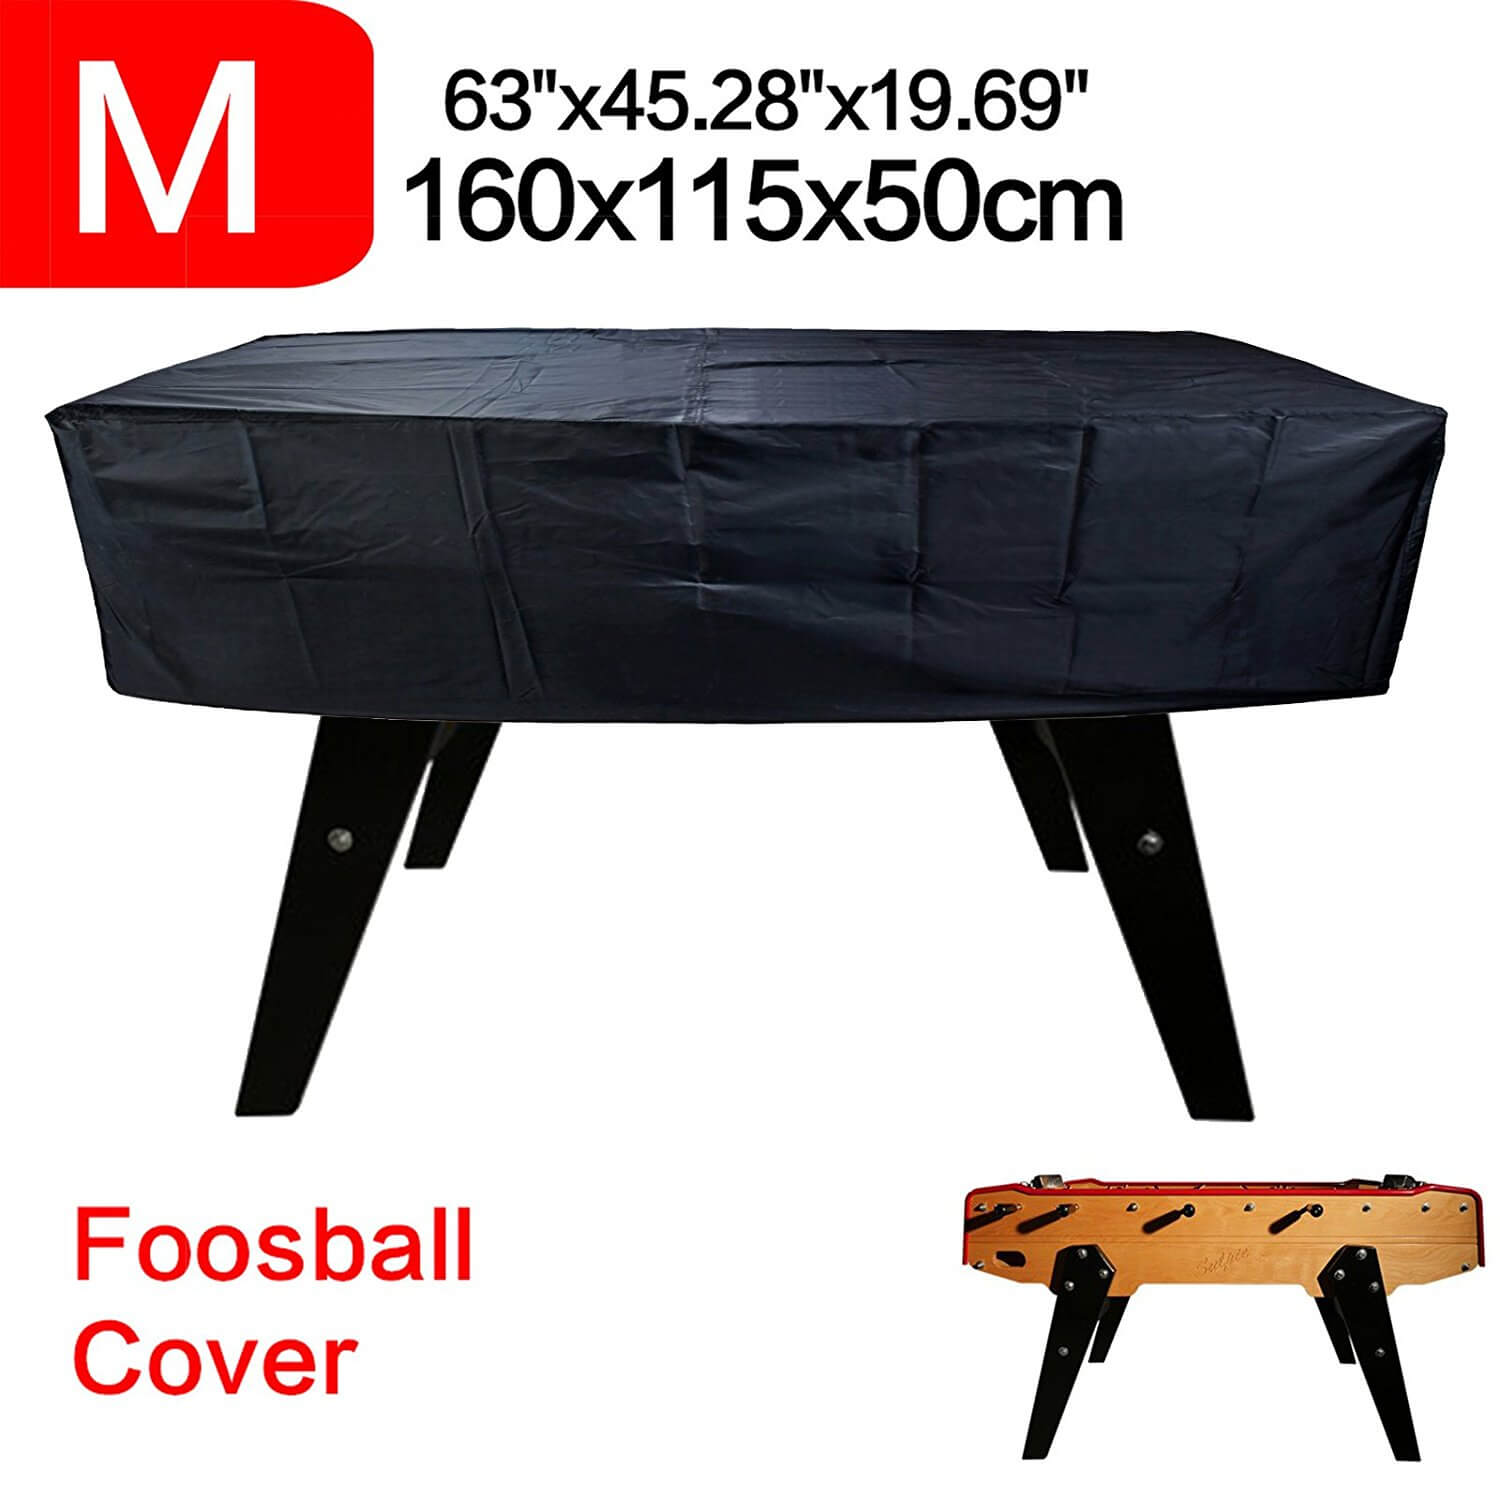 NEVERLAND Foosball Table Cover